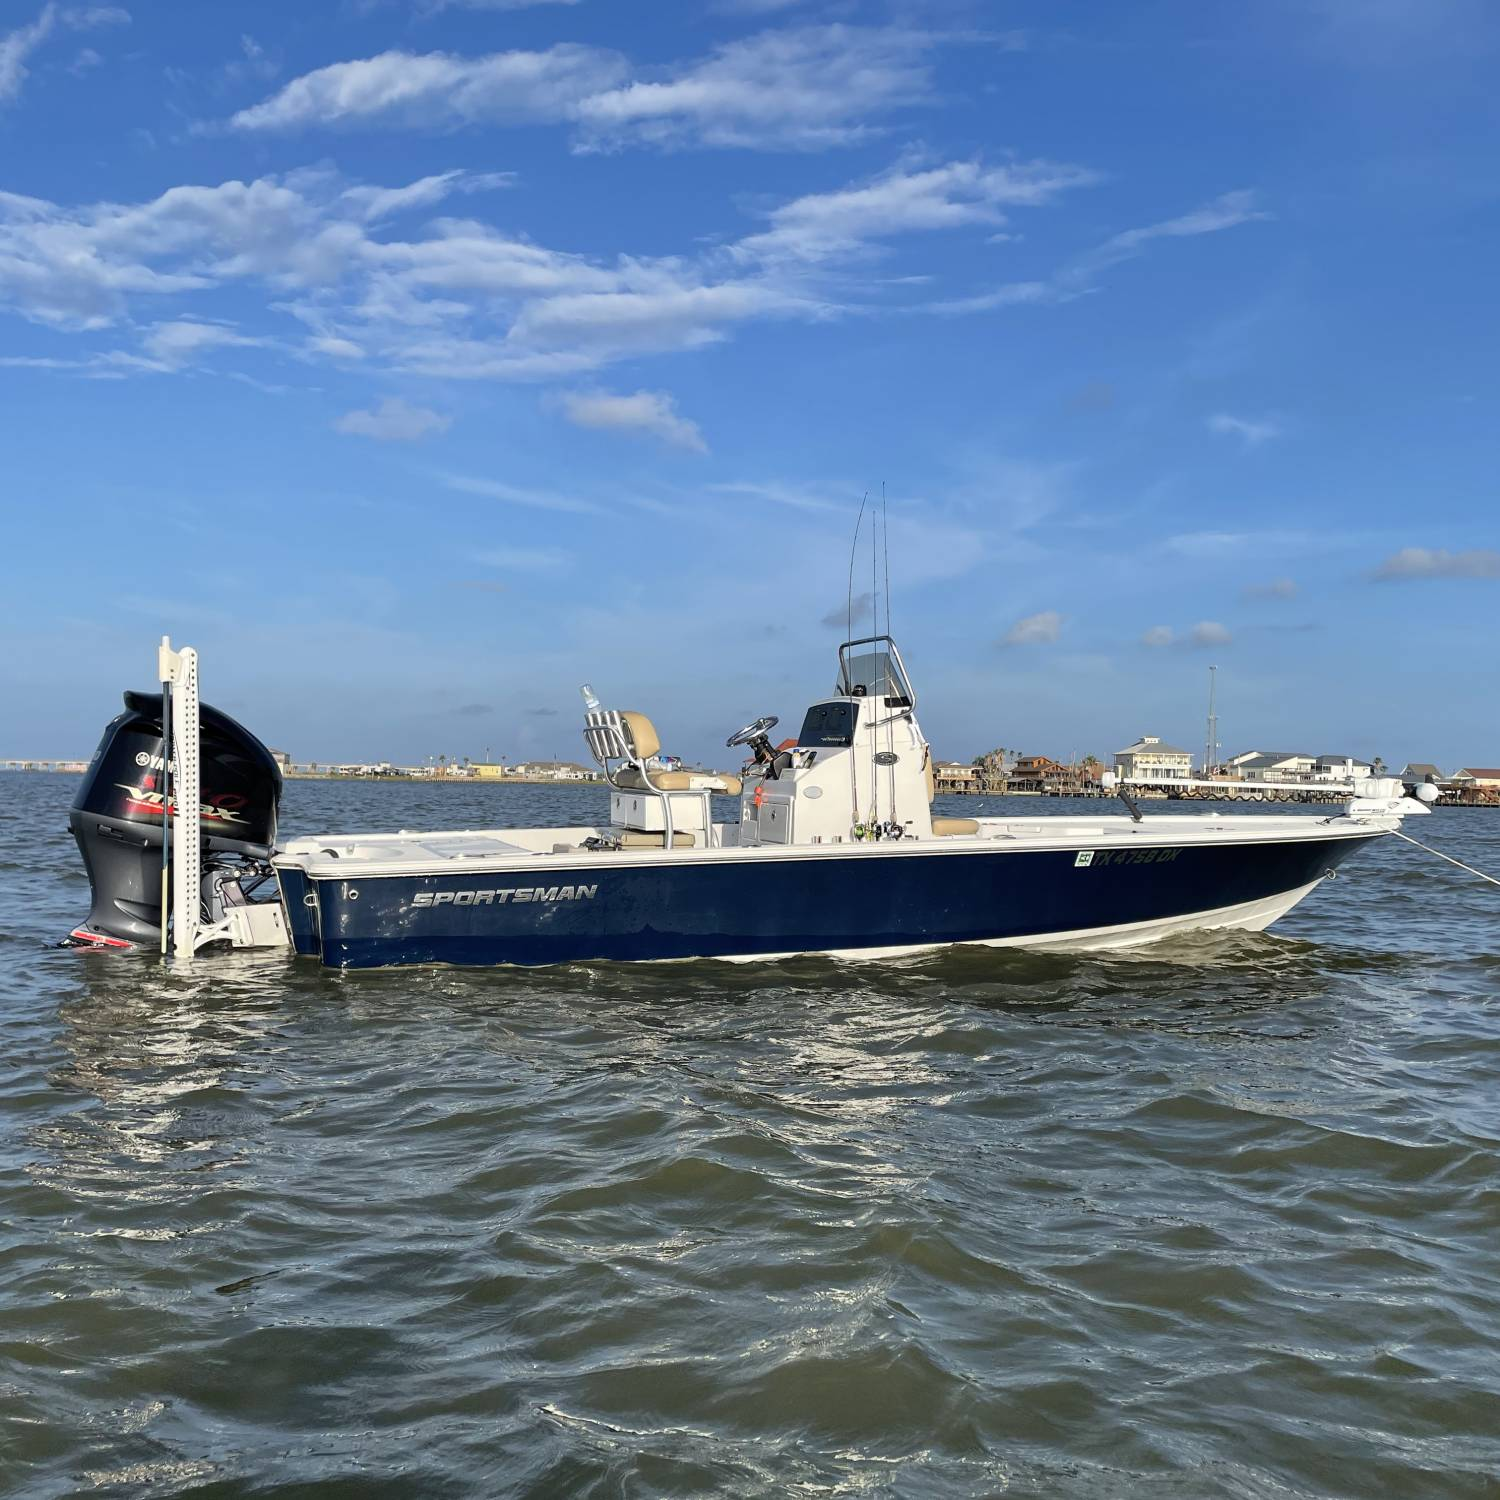 Title: 234 Tournament - On board their Sportsman Tournament 234 Bay Boat - Location: West Galveston Bay. Participating in the Photo Contest #SportsmanAugust2021